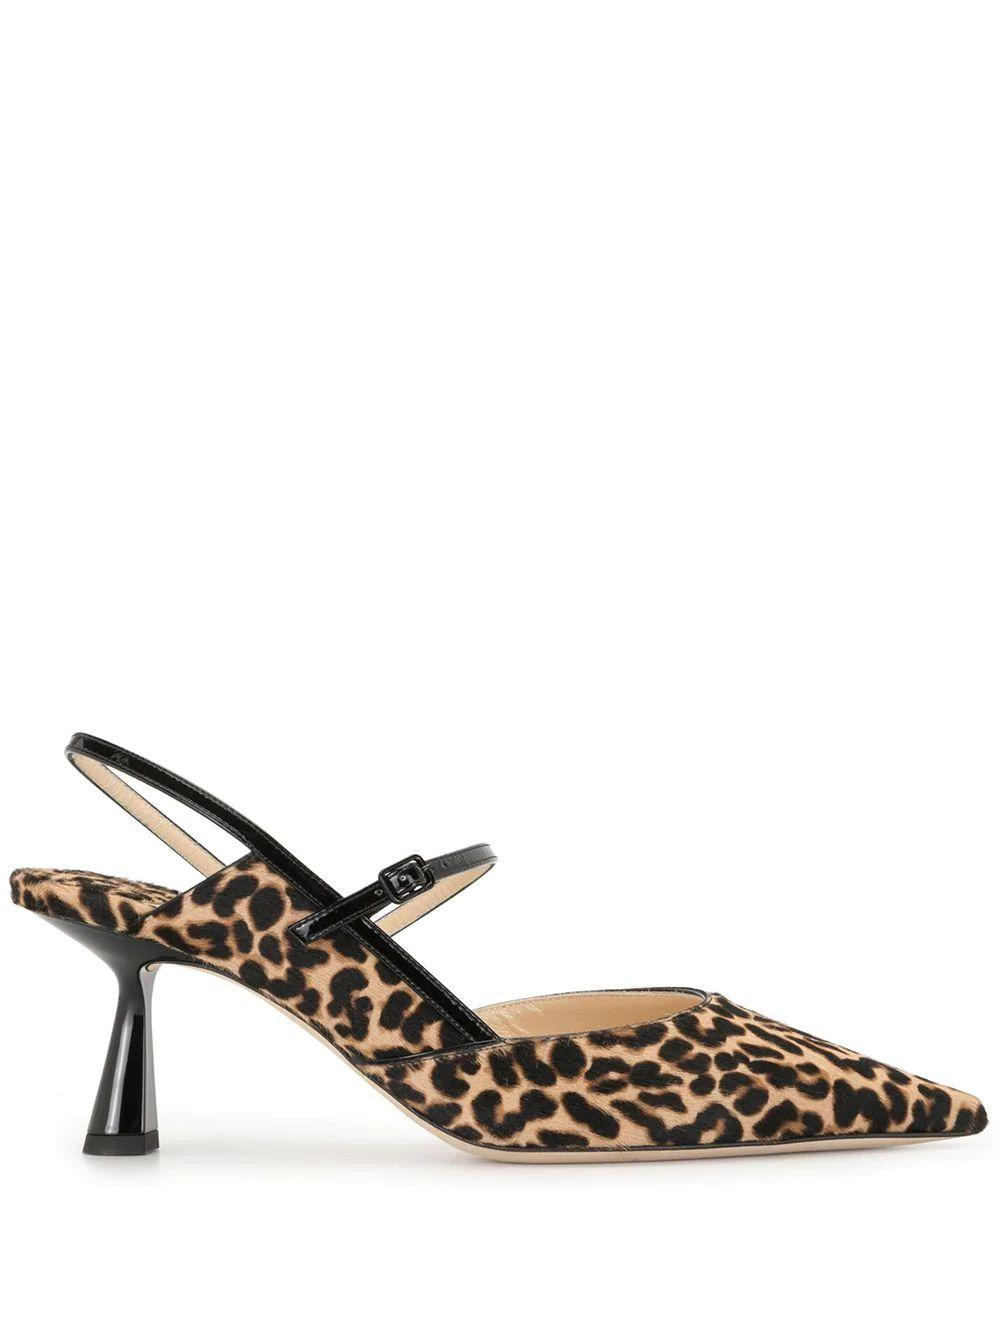 Ray 65mm Leopard Slingback Item # RAY65-LPT